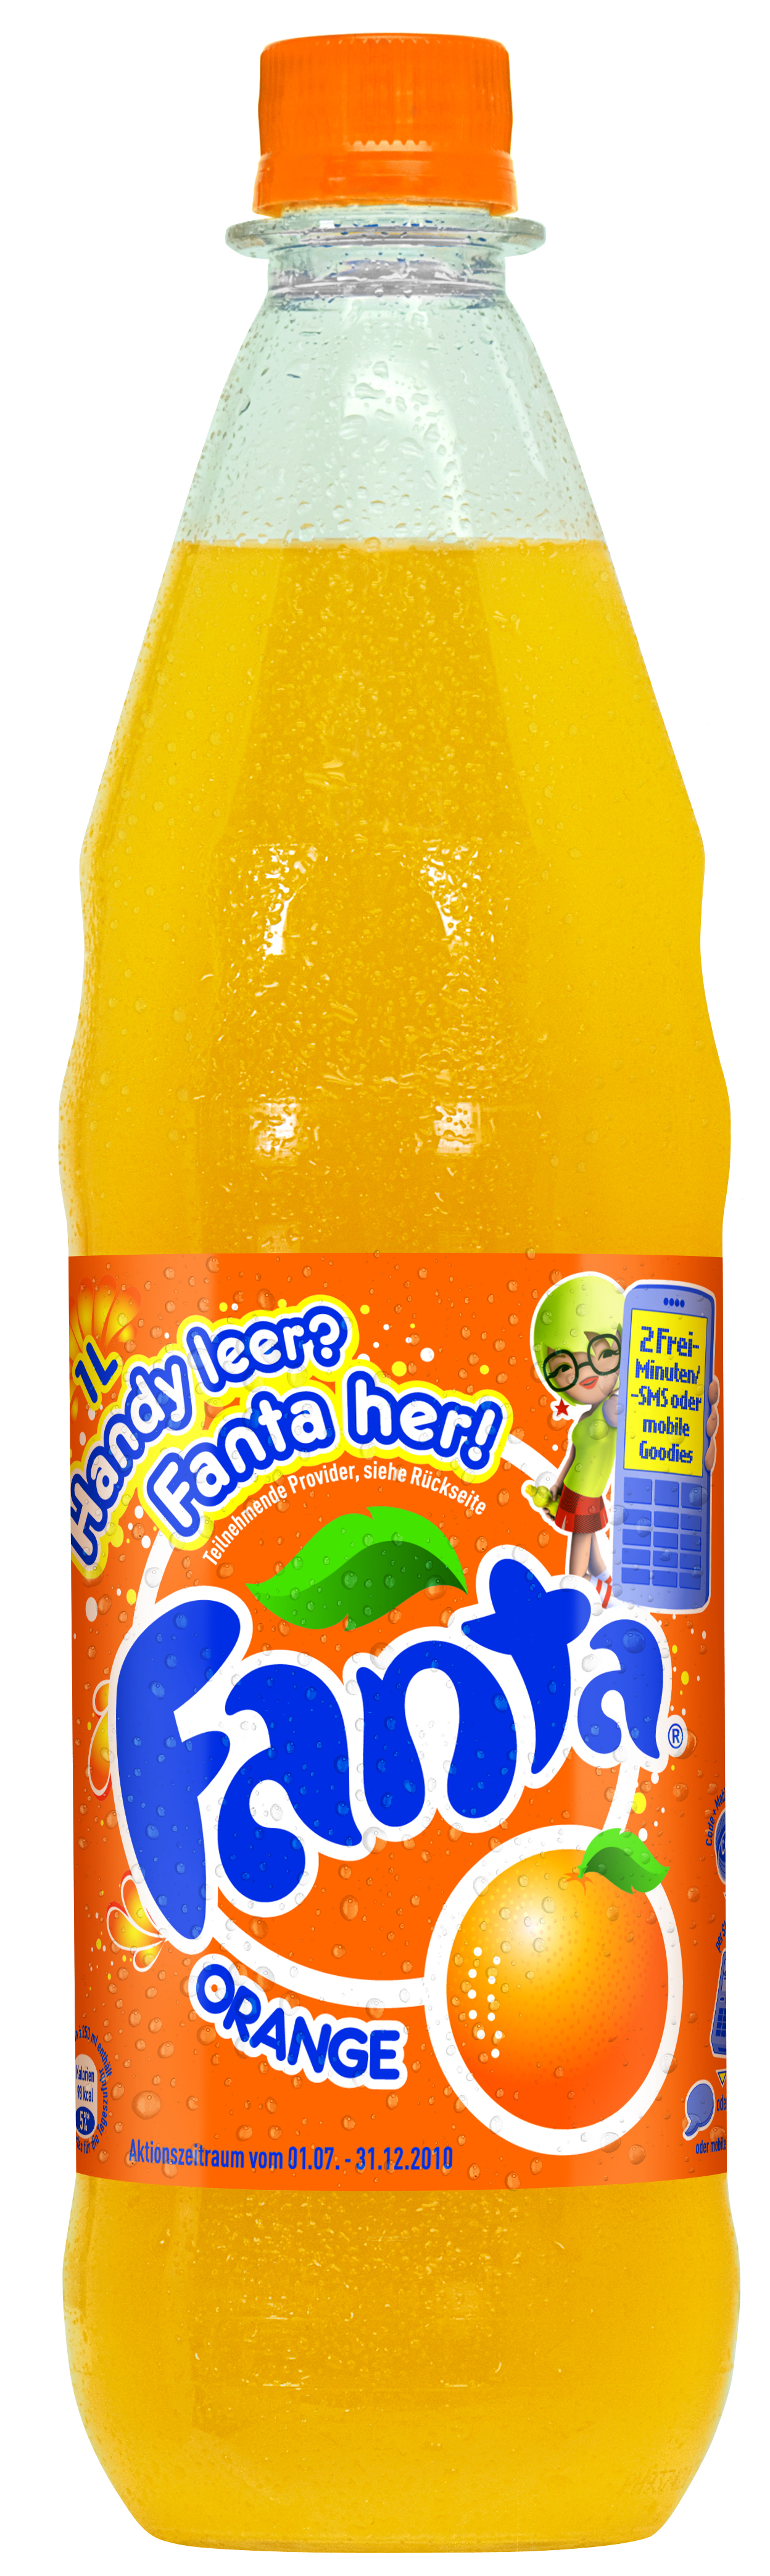 Fanta Orange 12 x 1 Liter (PET)